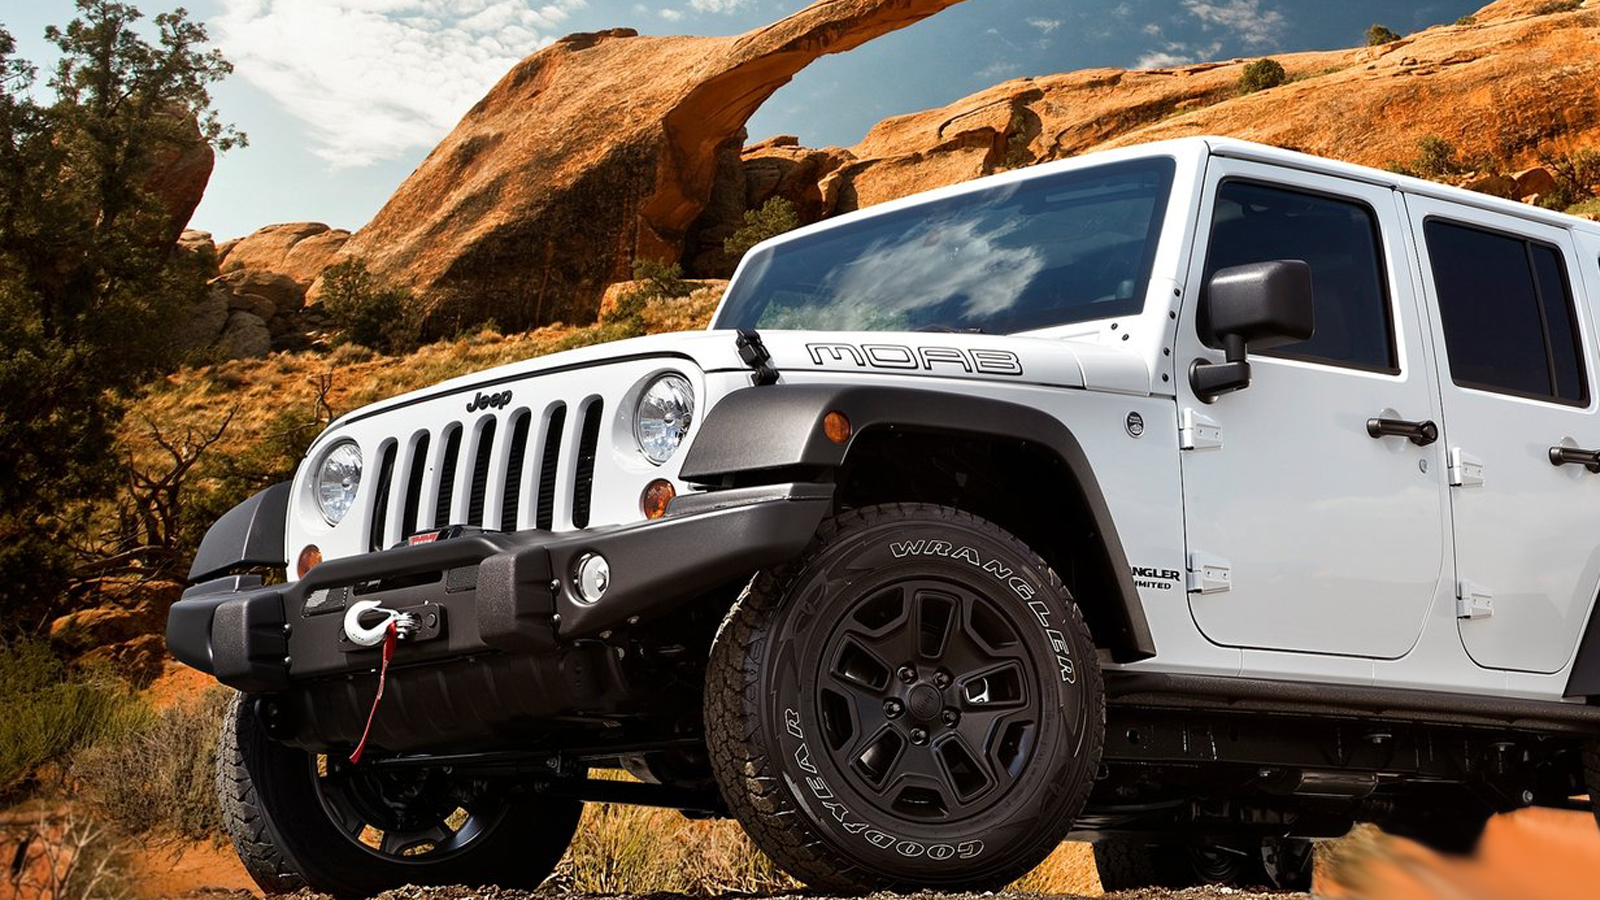 car wallpapers in good images 2013 jeep wrangler unlimited moab on 17. Black Bedroom Furniture Sets. Home Design Ideas